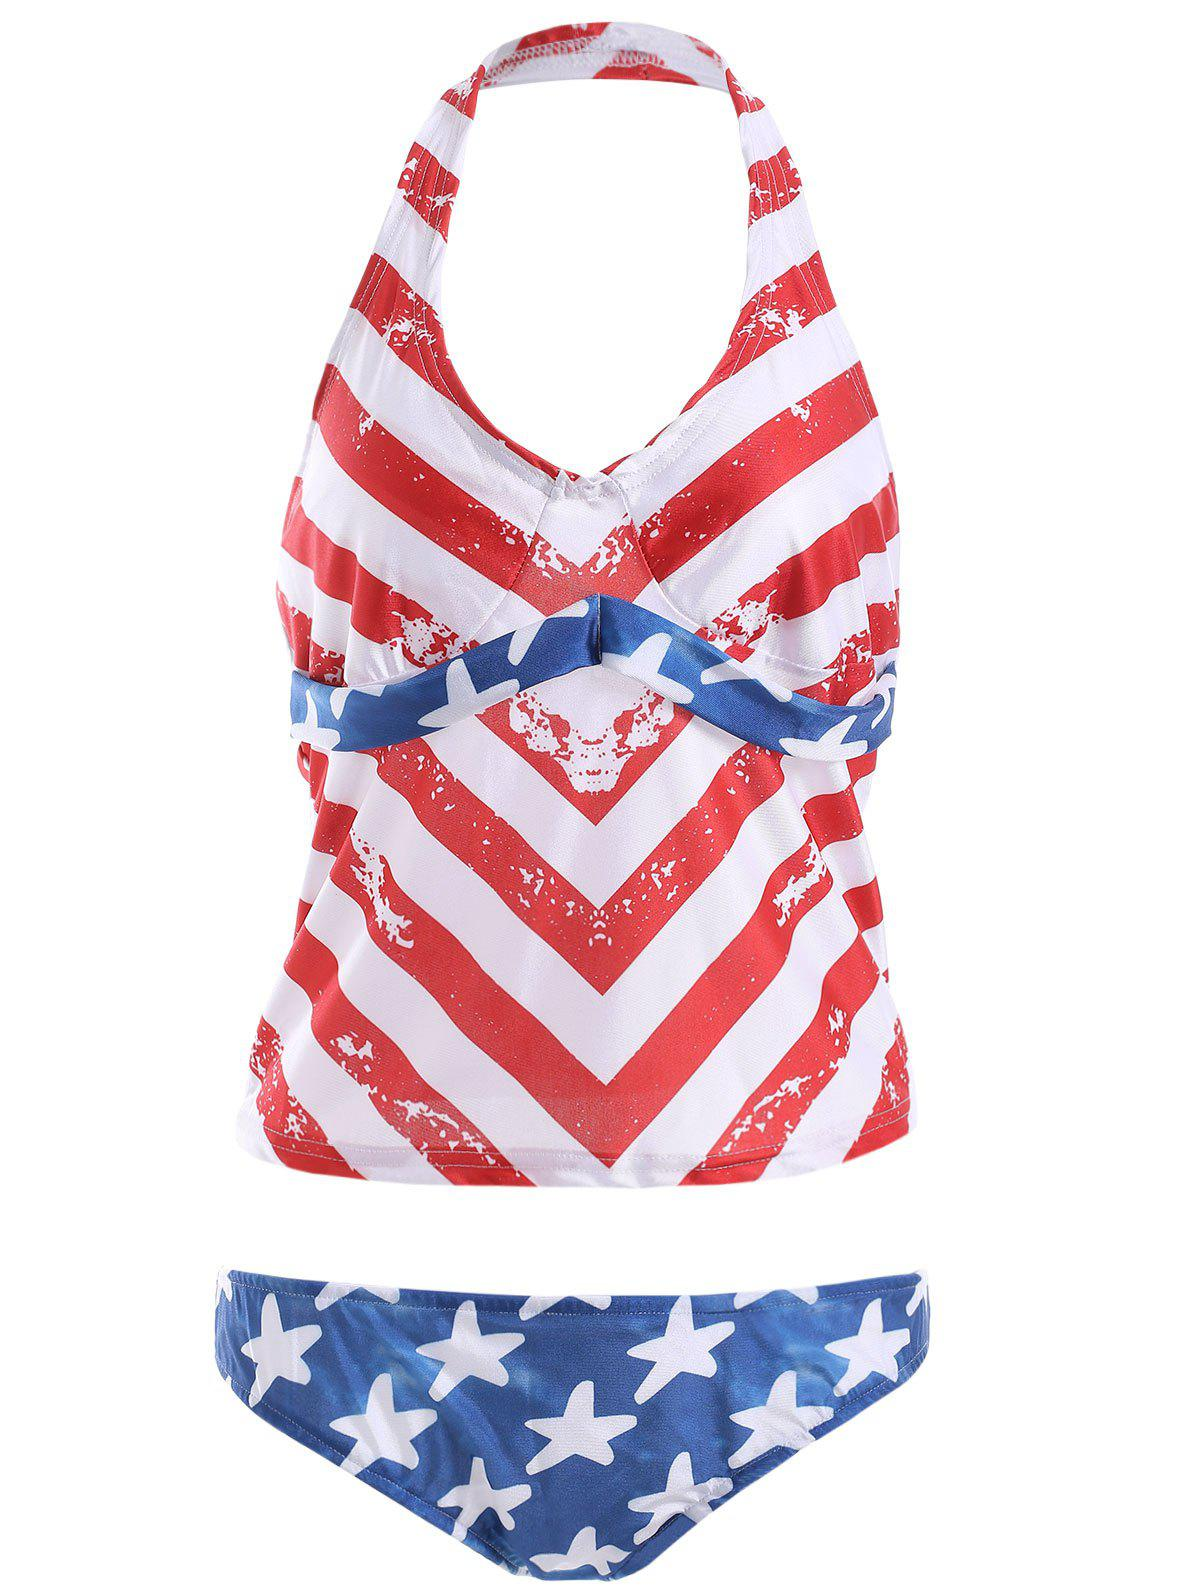 Halter Backless Zigzag Top + Star Print Briefs Women's Tankini